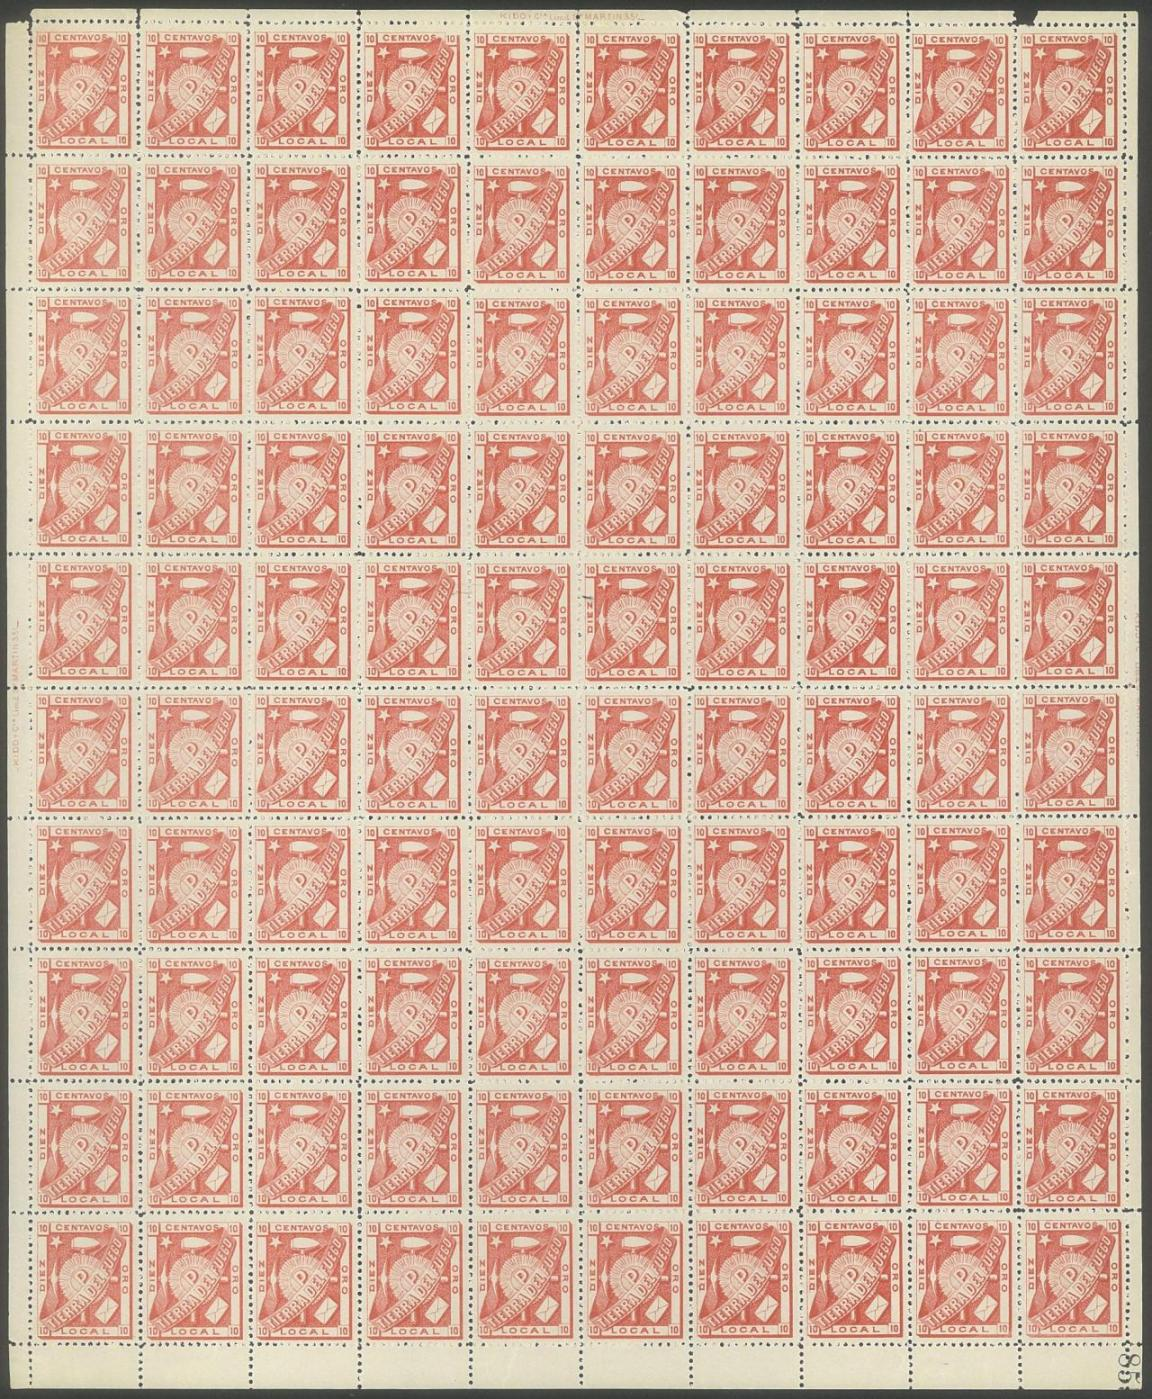 Lot 1 - Argentina  -  Tel Aviv Stamps Ltd. Auction #46